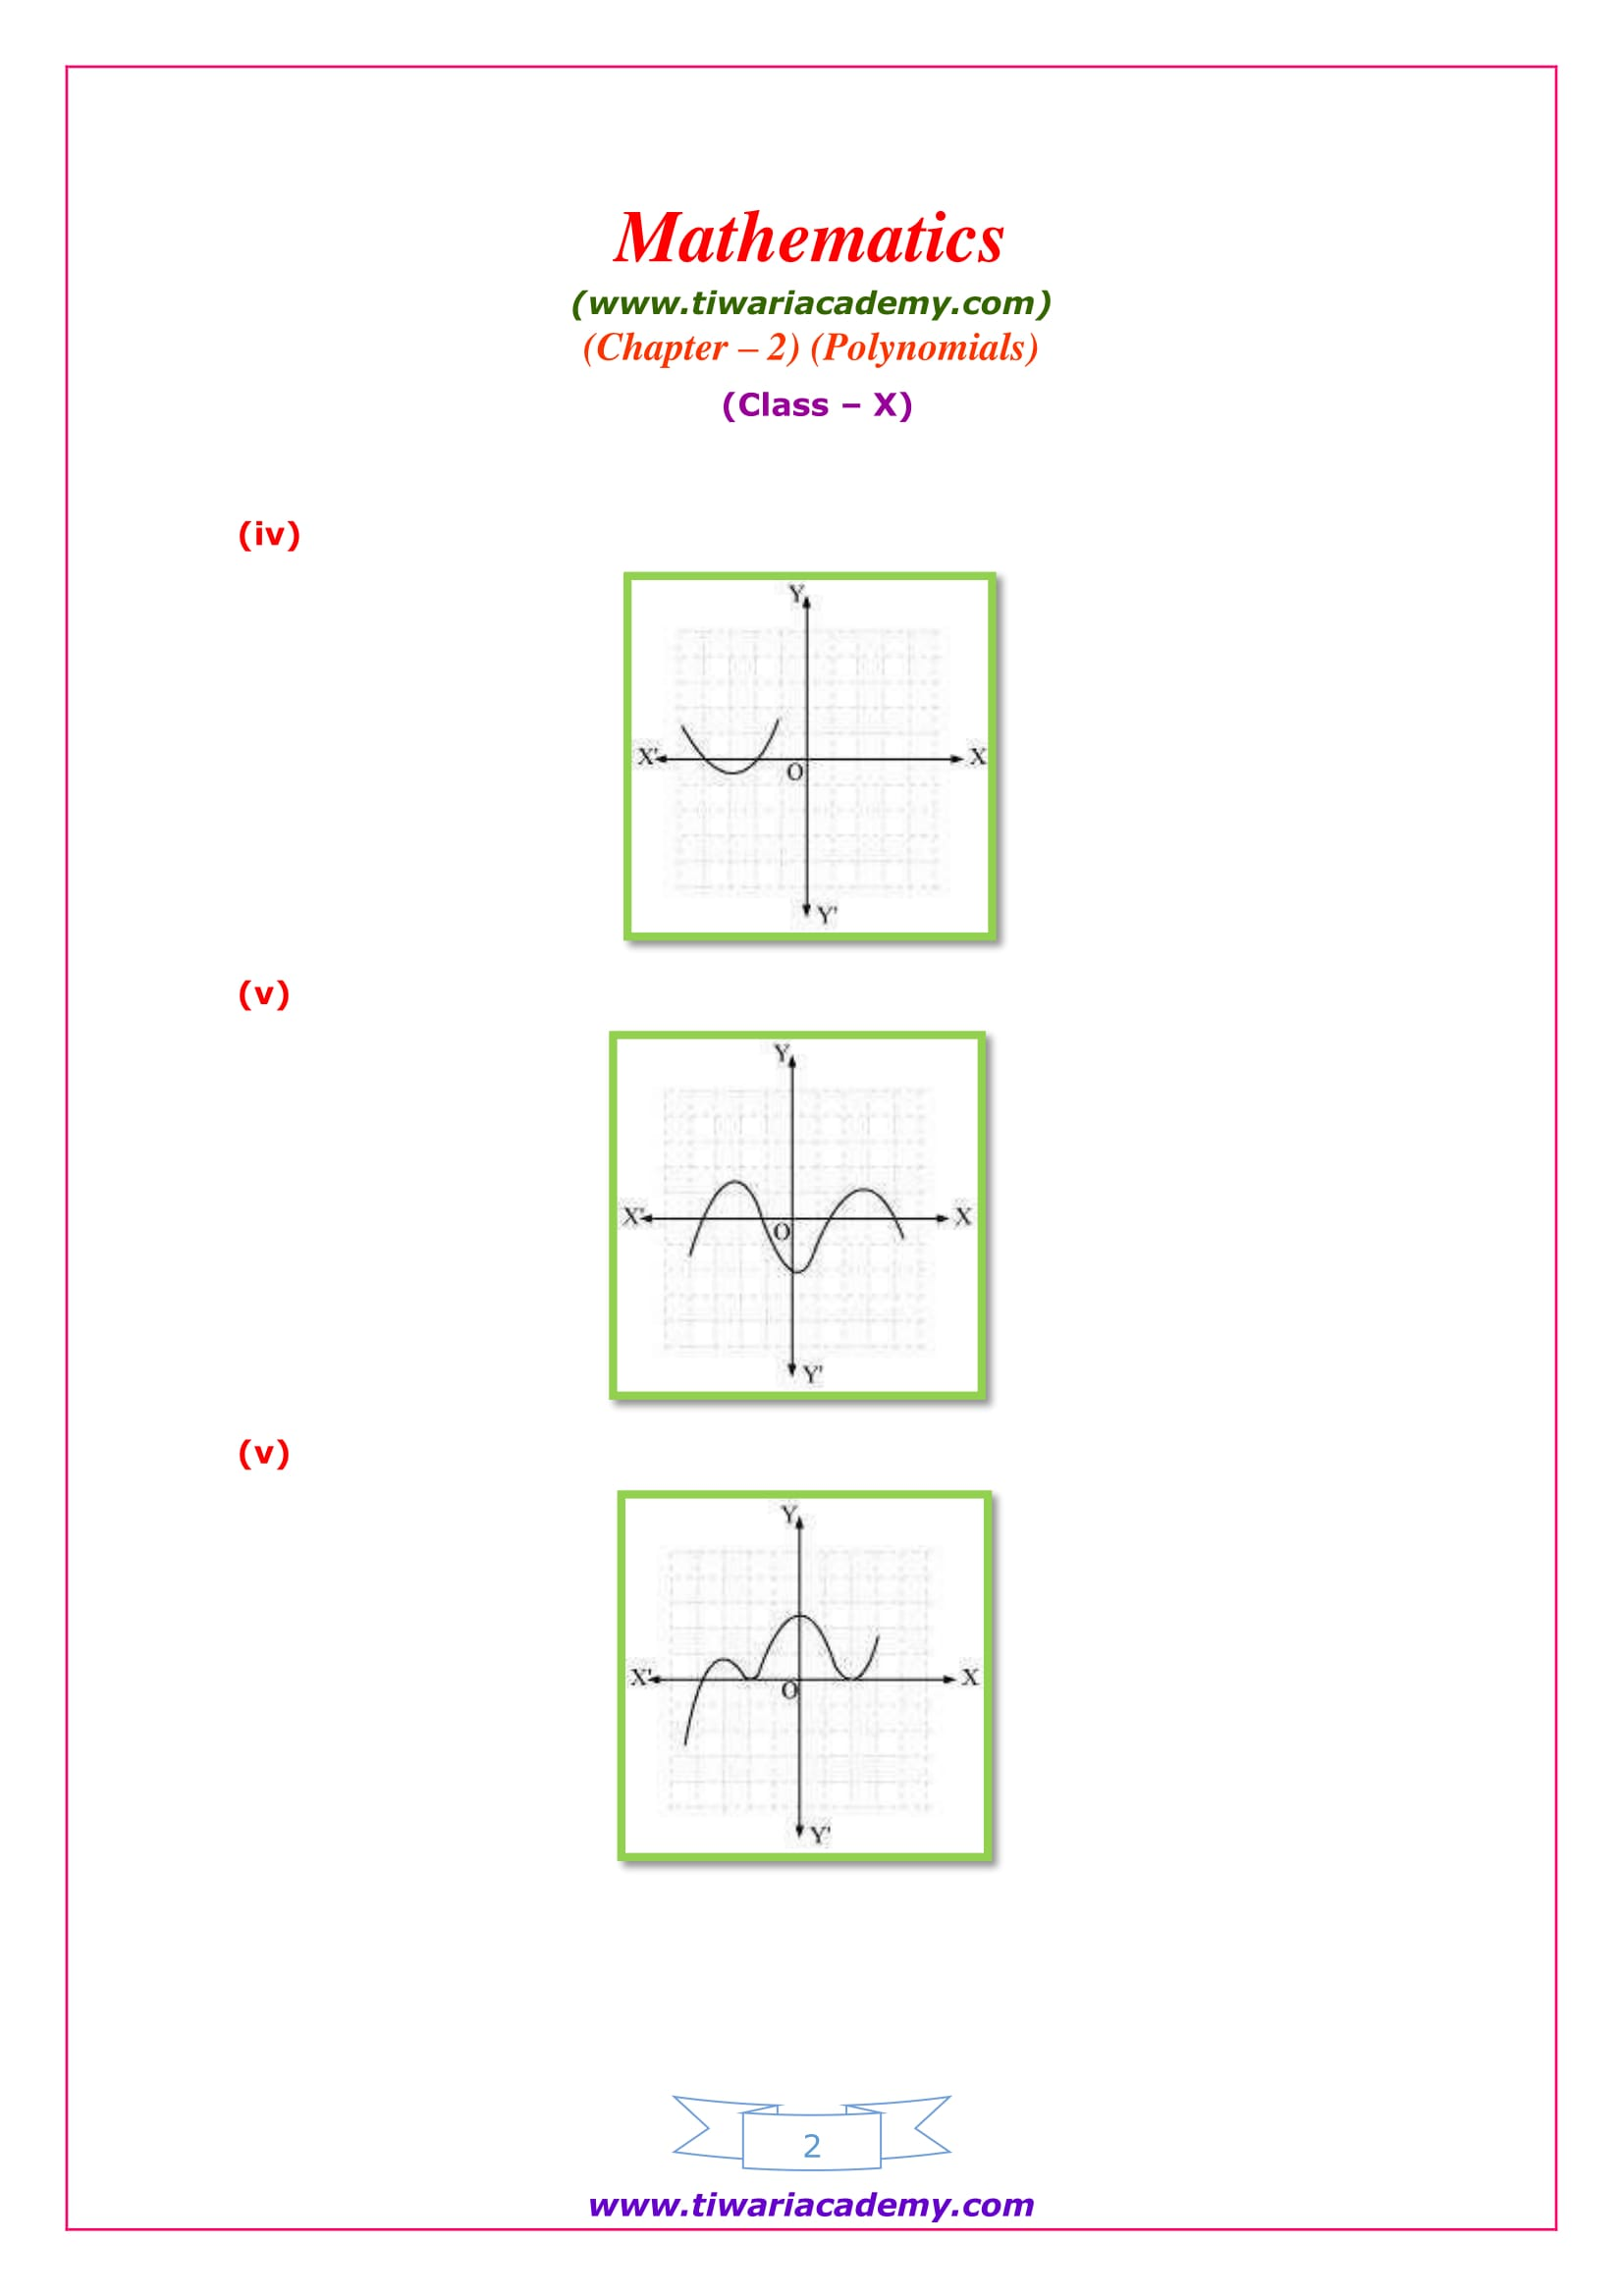 NCERT Solutions for Class 10 Maths Chapter 2 Exercise 2.1 Question 1 part iv, v, vi